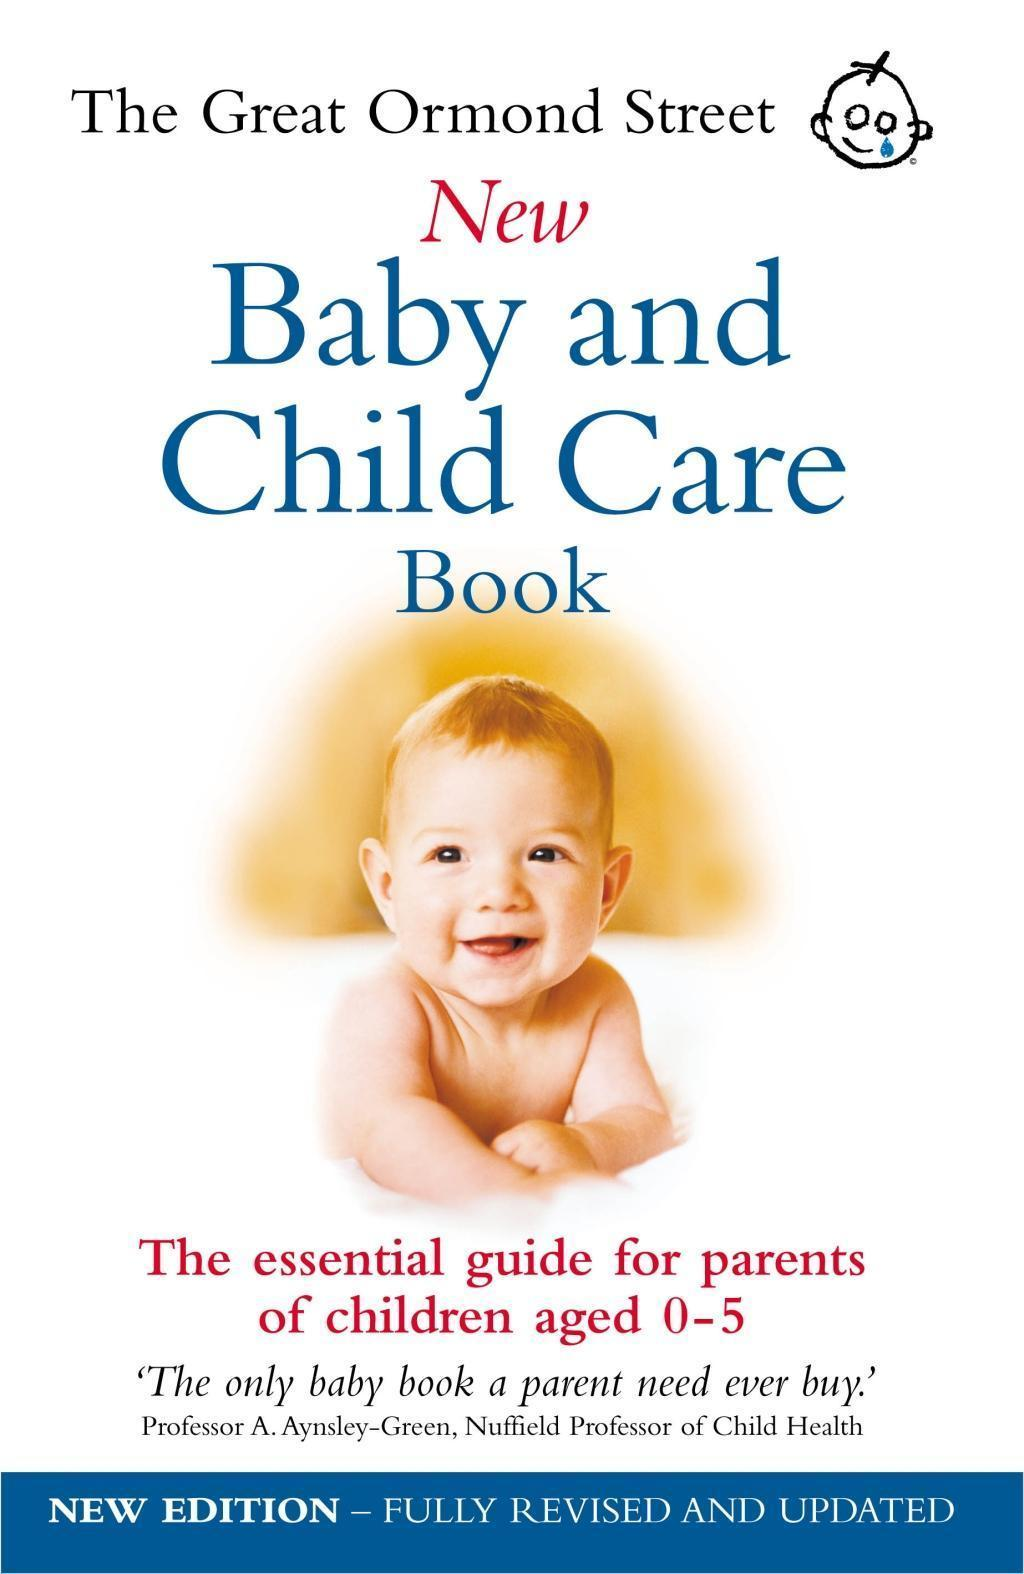 The Great Ormond Street New Baby & Child Care Book